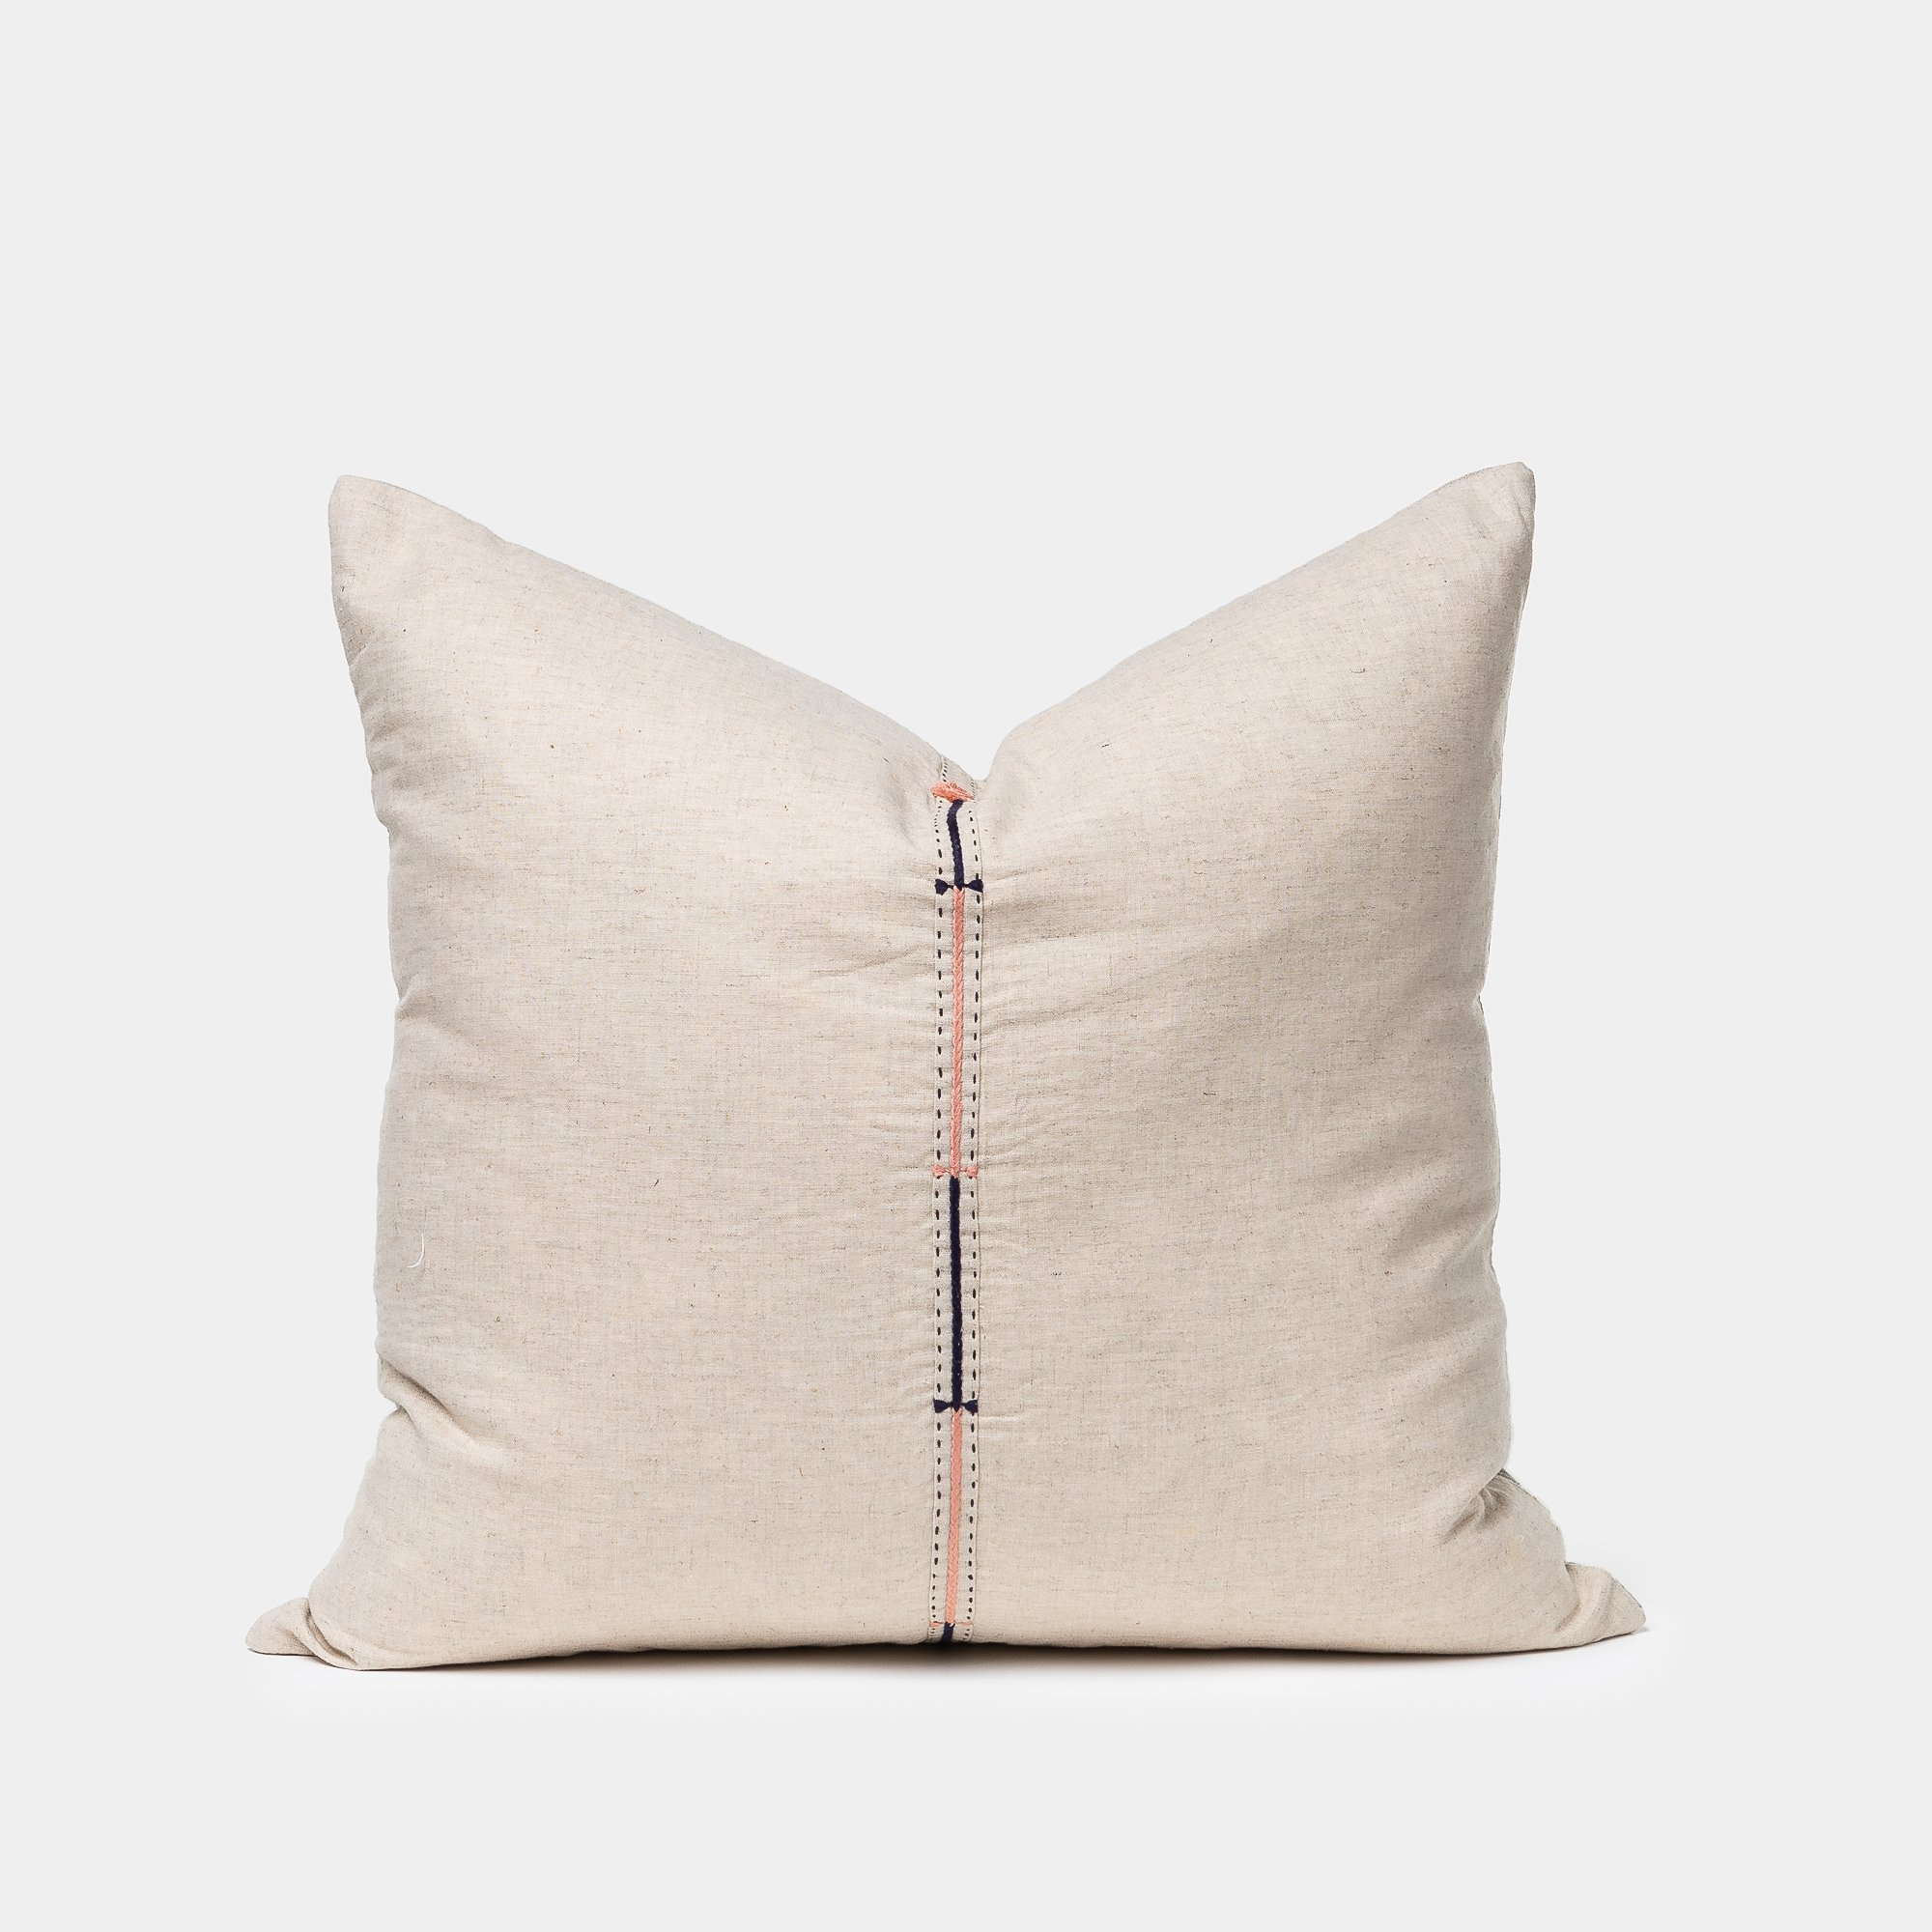 ALL-SORTS-OF-SHOPPE-EDDY-PILLOW